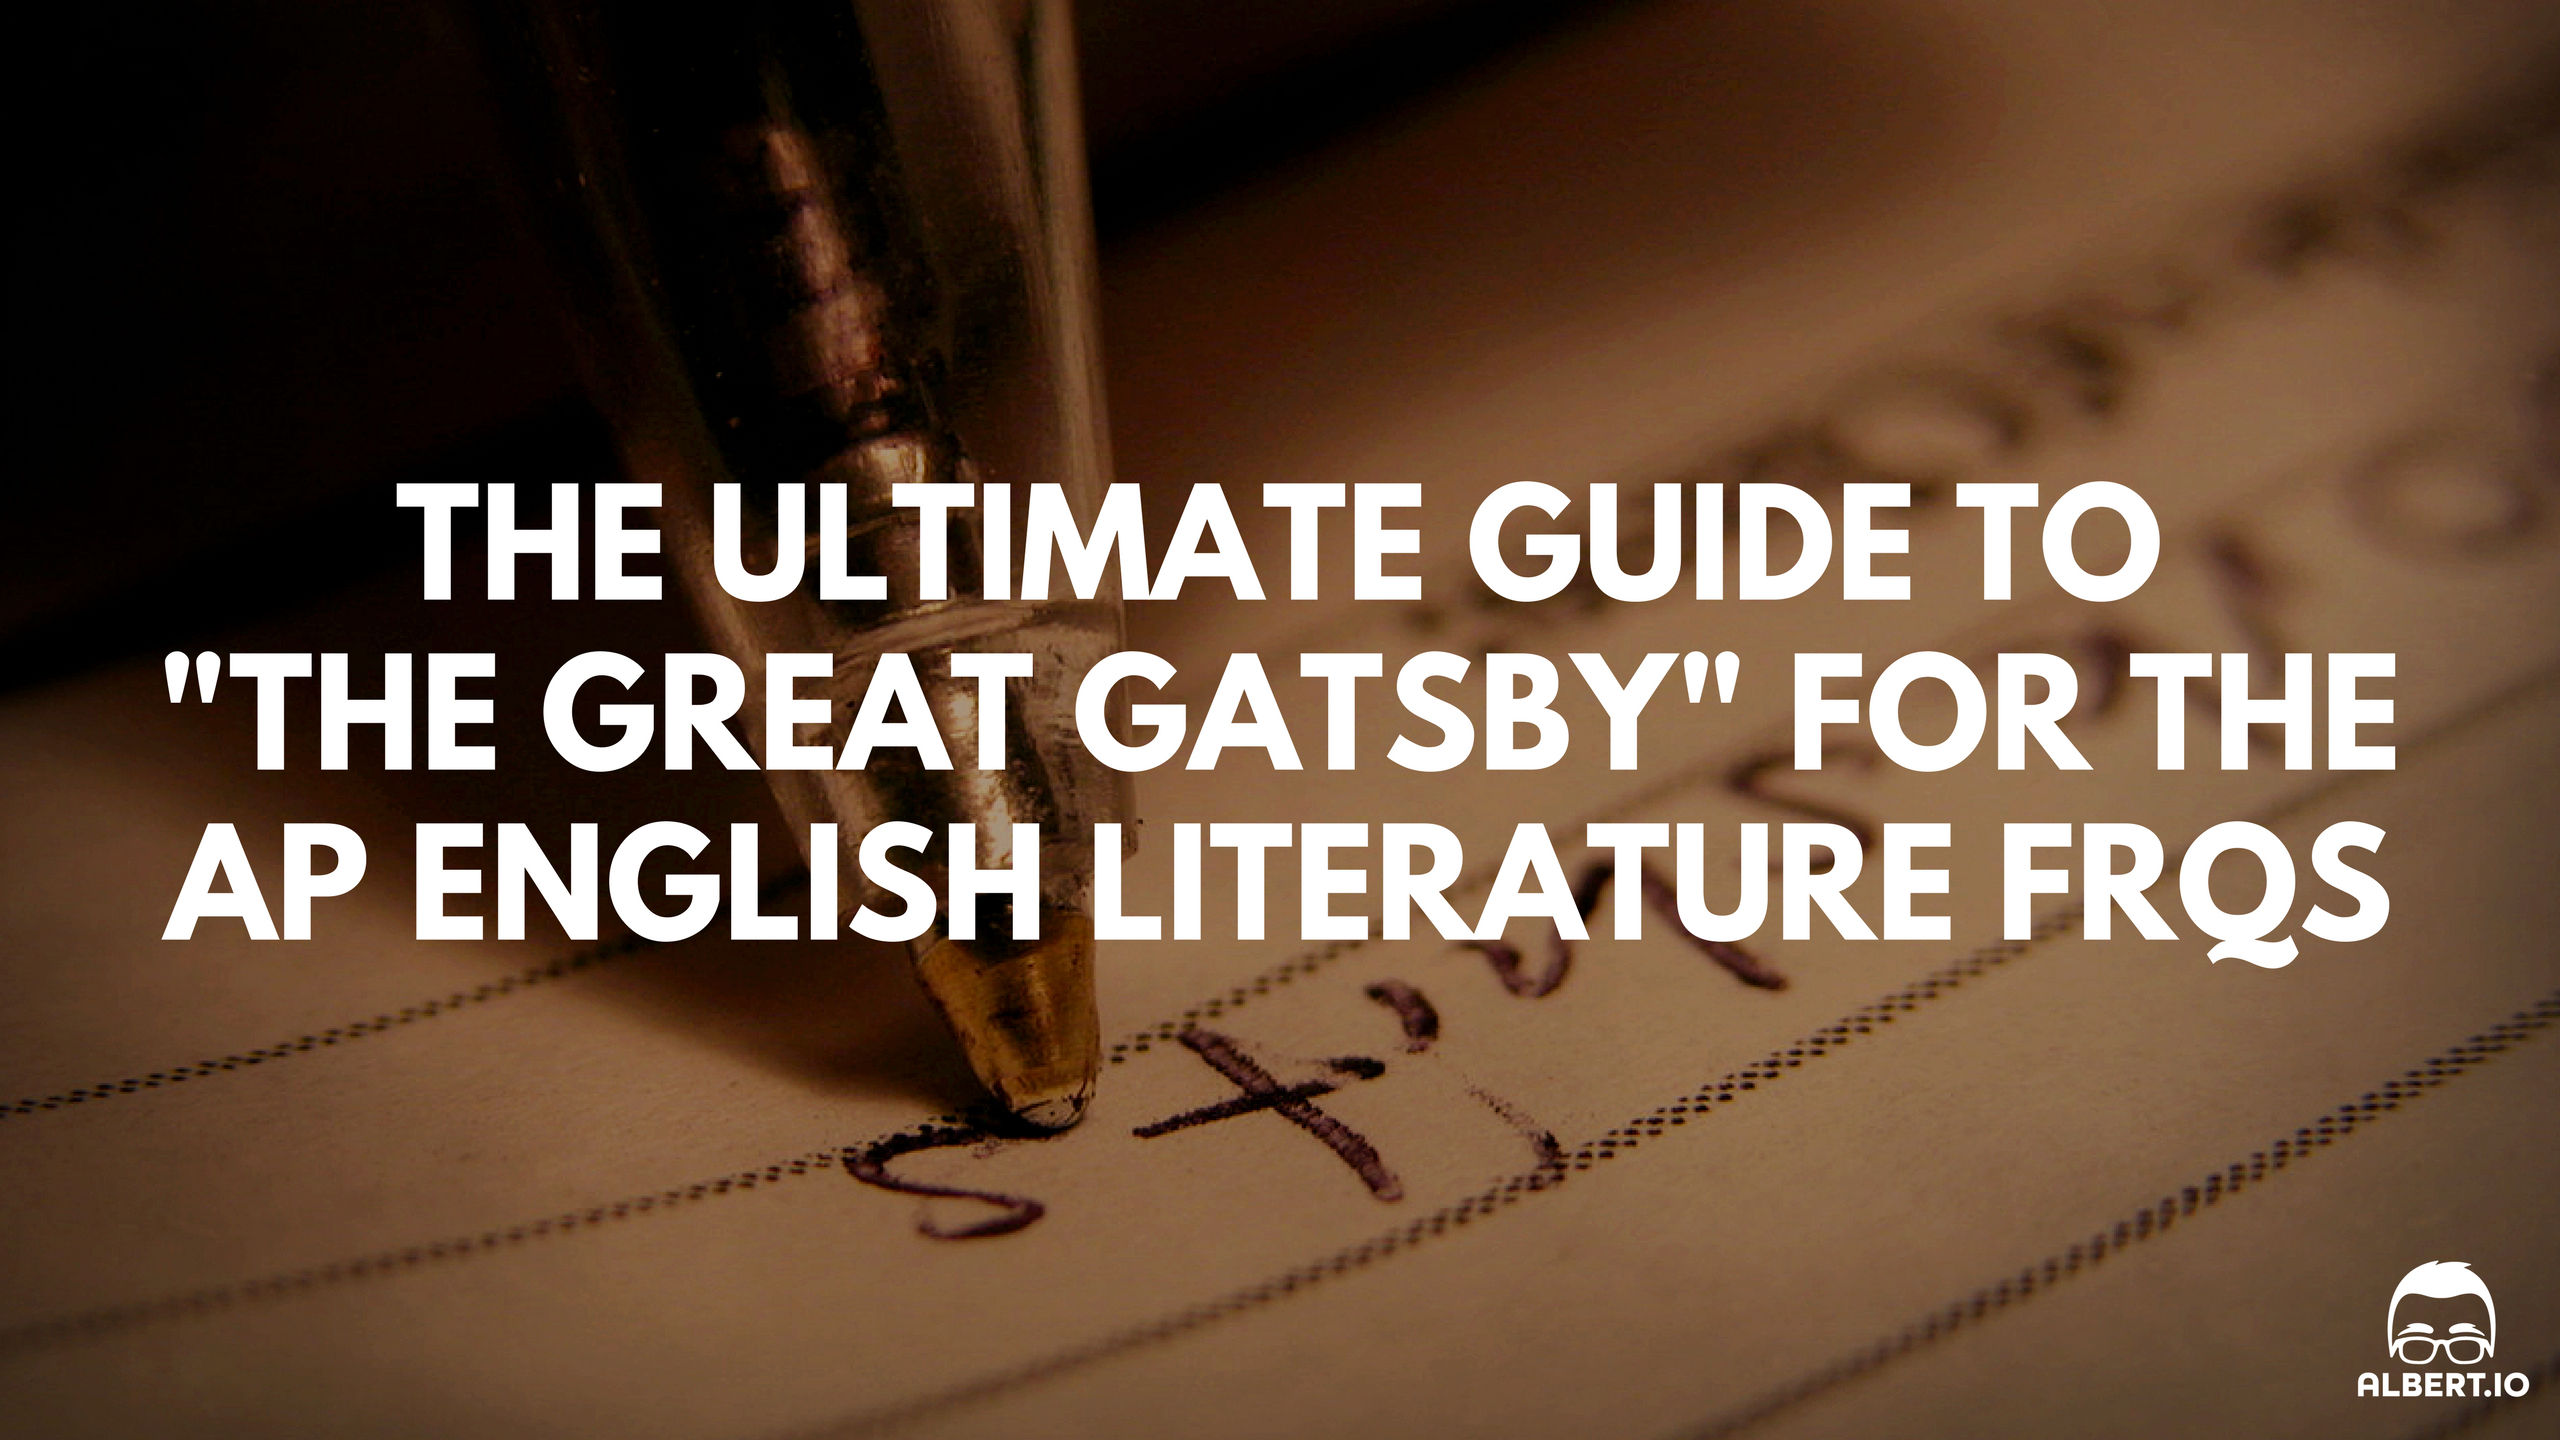 english lit great gatsby This is my english literature blog 2 december 2012 the great gatsby reading journal: chapter 4 great gatsby reading journal.